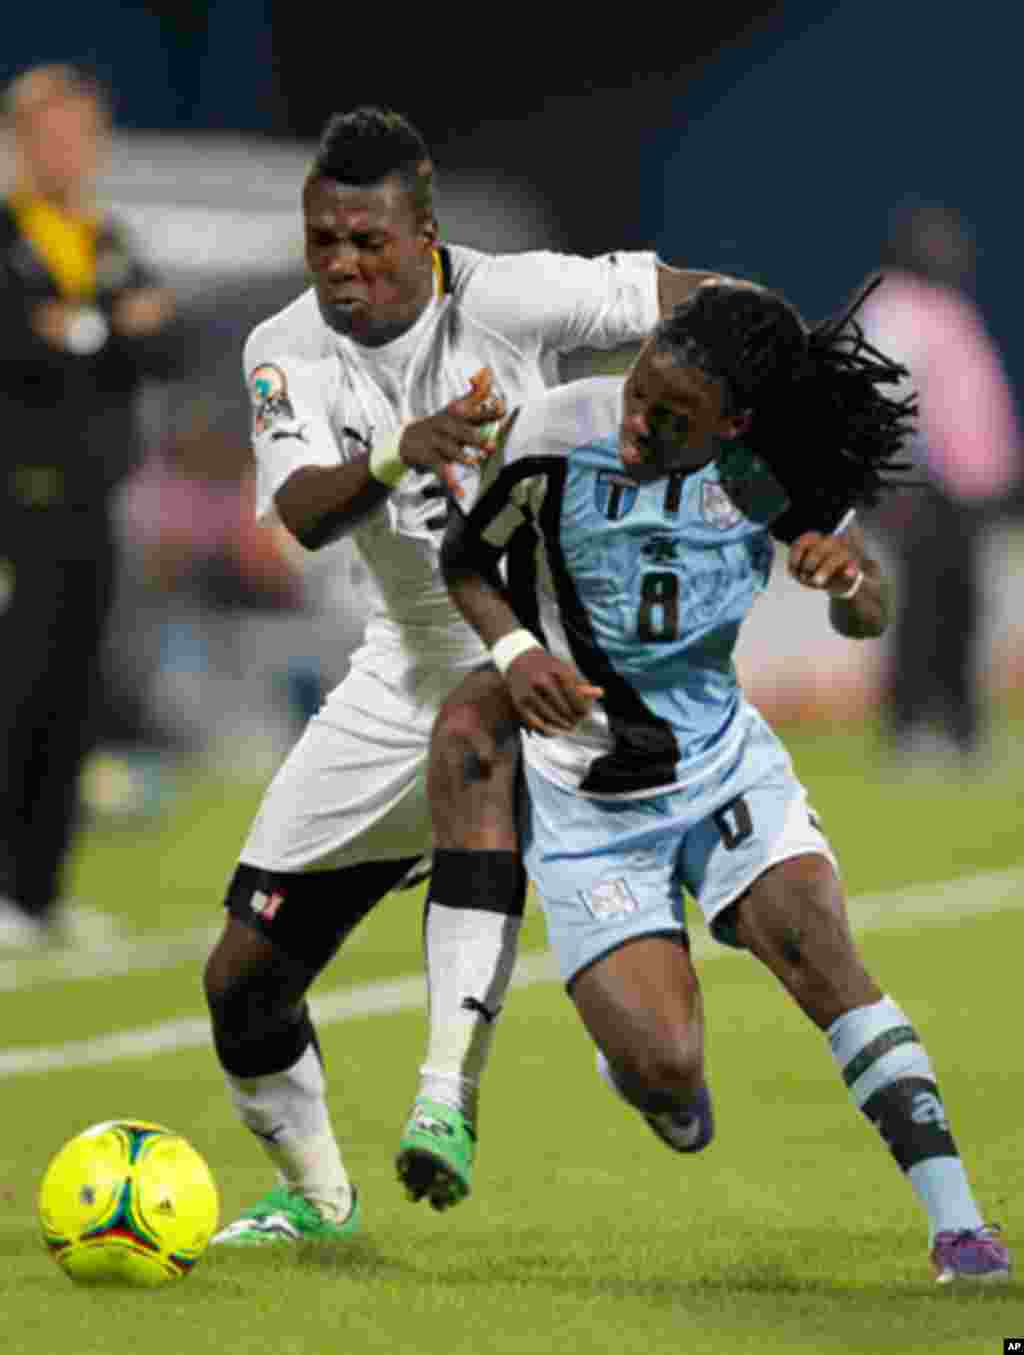 Ghana's Asamoah Gyan challenges Emmanuel Agyemang-Badu of Botswana during their African Cup of Nations Group D soccer match in FranceVille Stadium